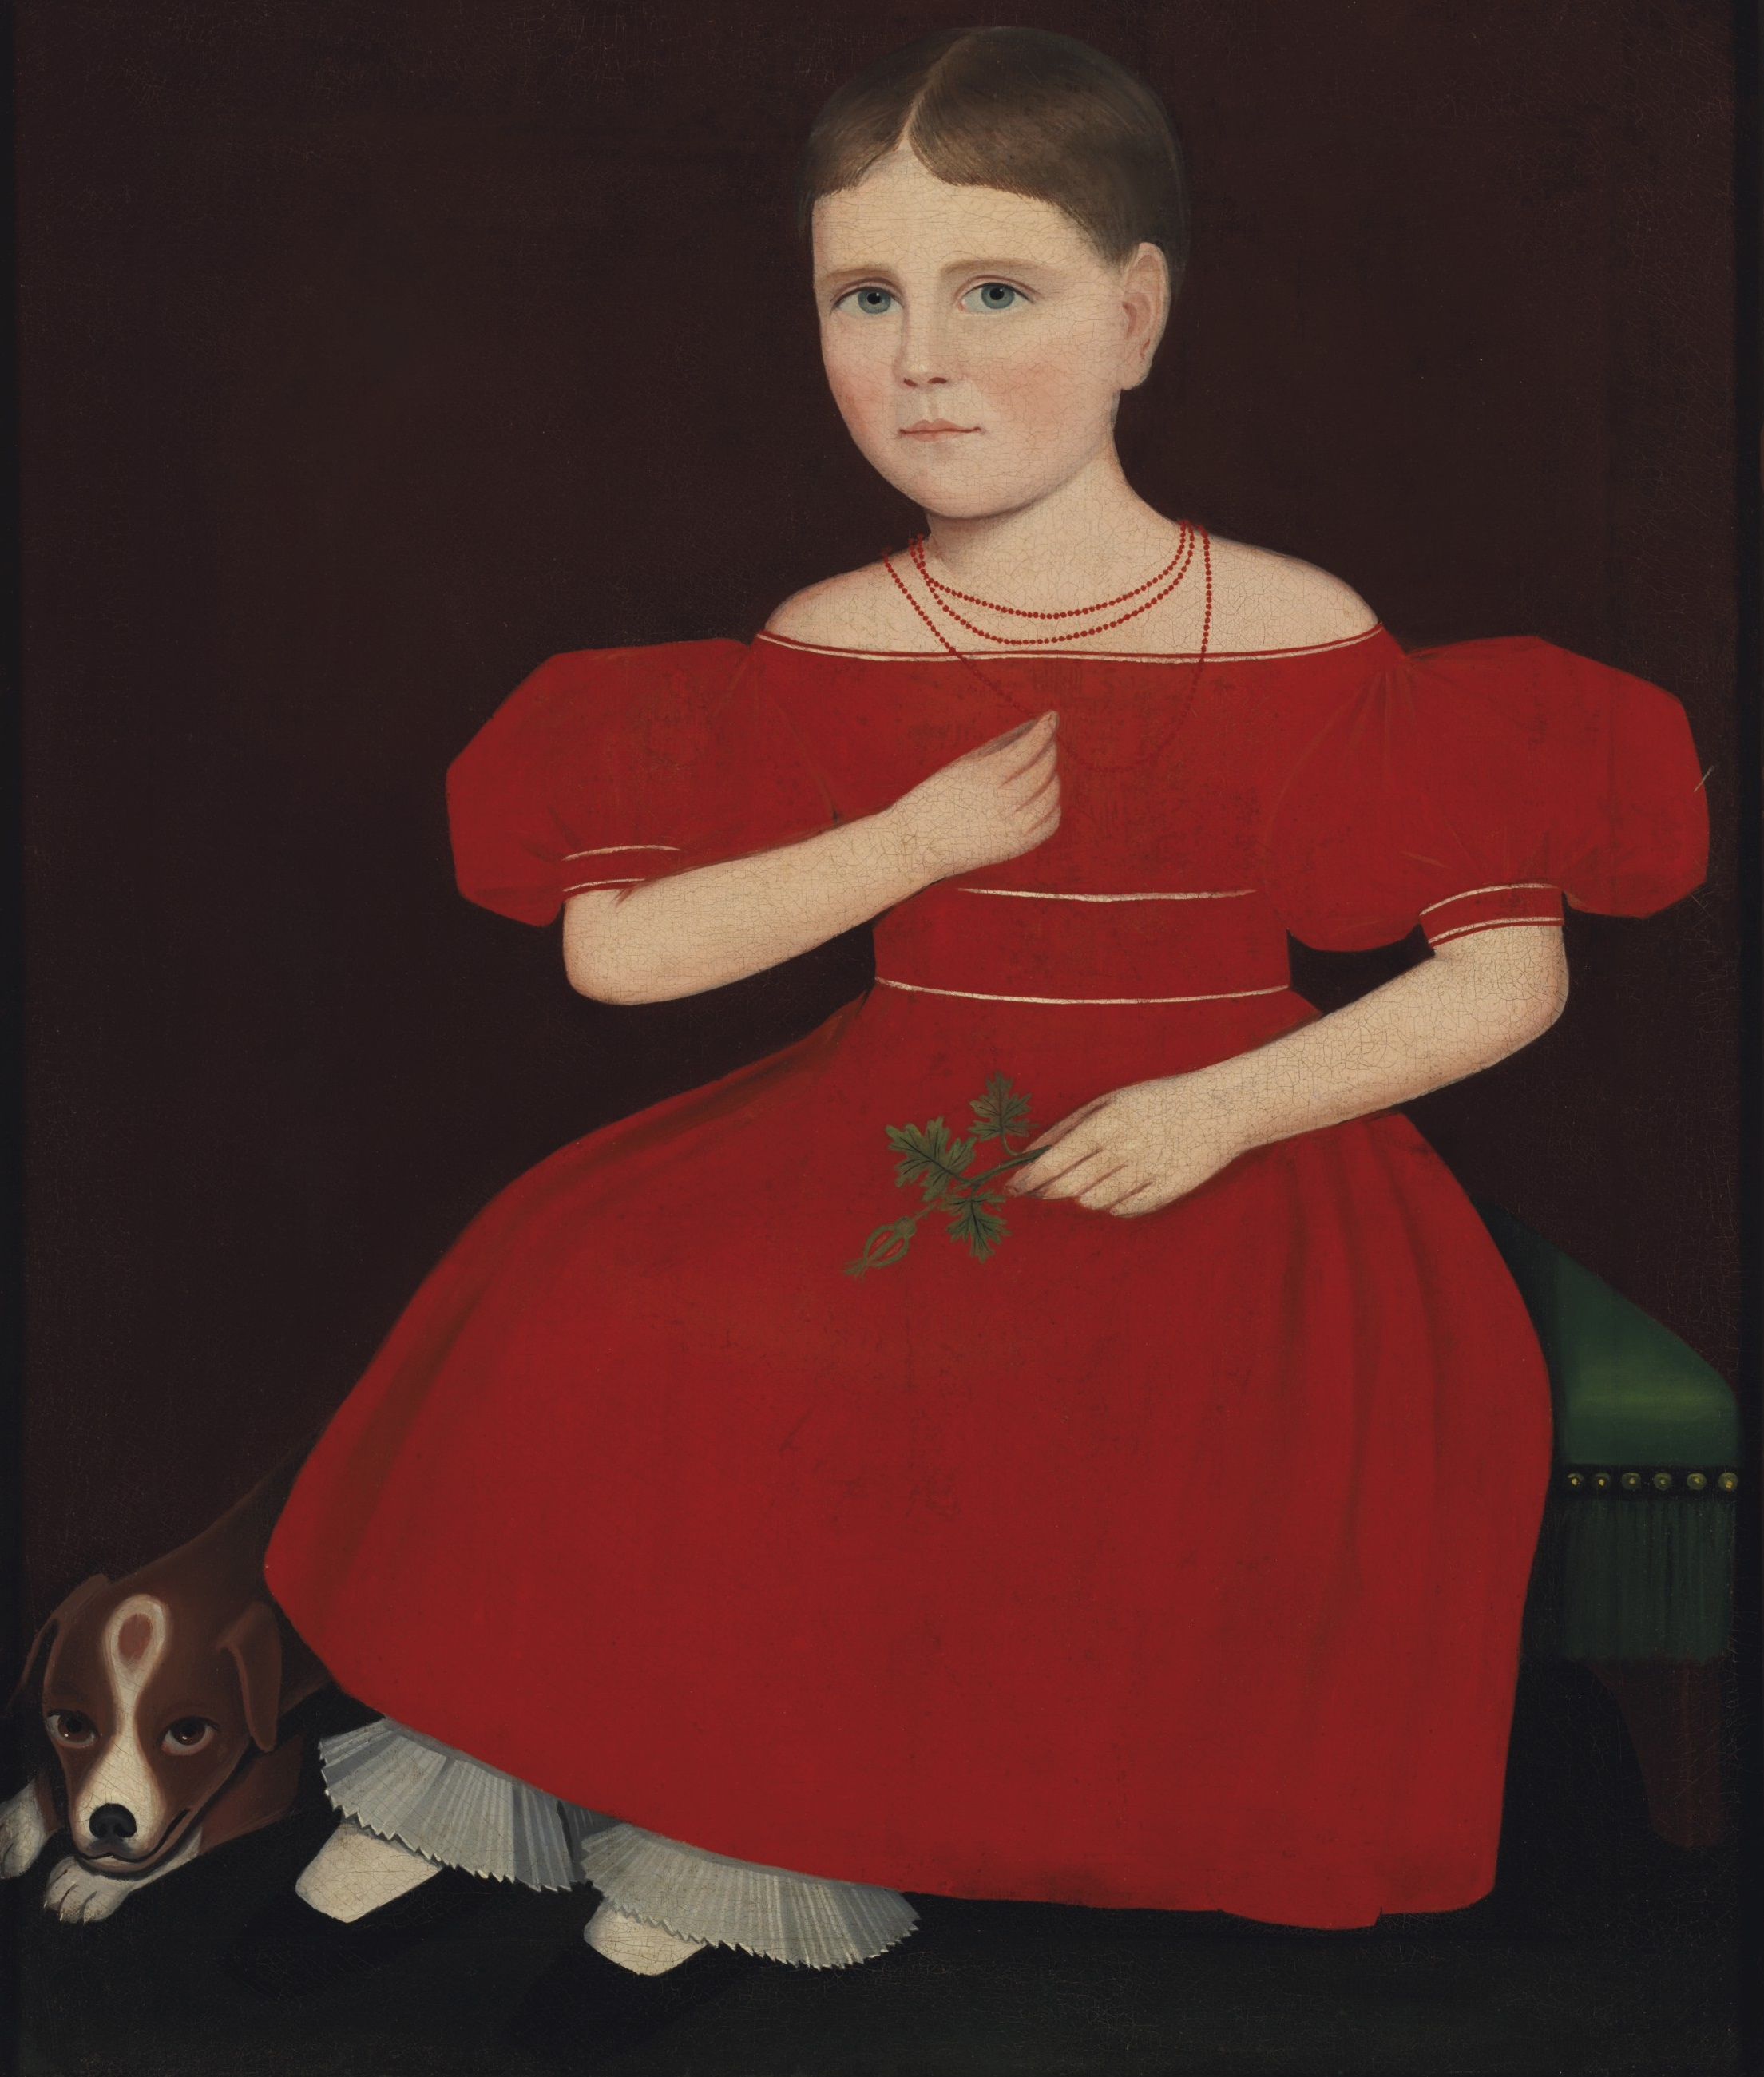 A charming 1830s portrait of a child by Ammi Phillips set a record for the artist at auction at Christie's in 2019.